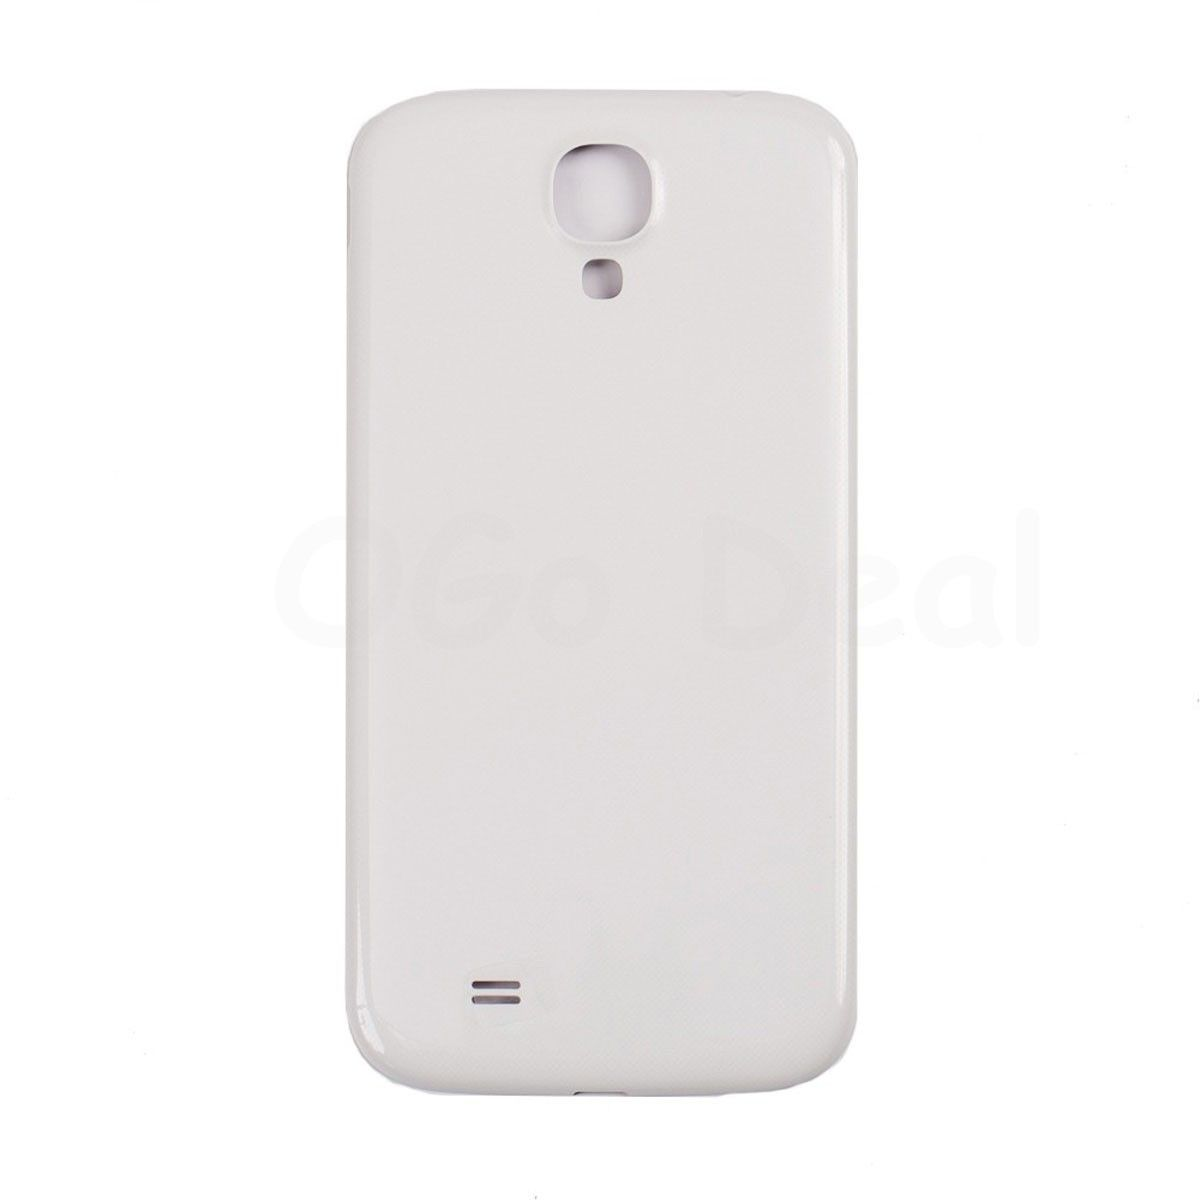 Battery doorback cover replacement for samsung galaxy s4